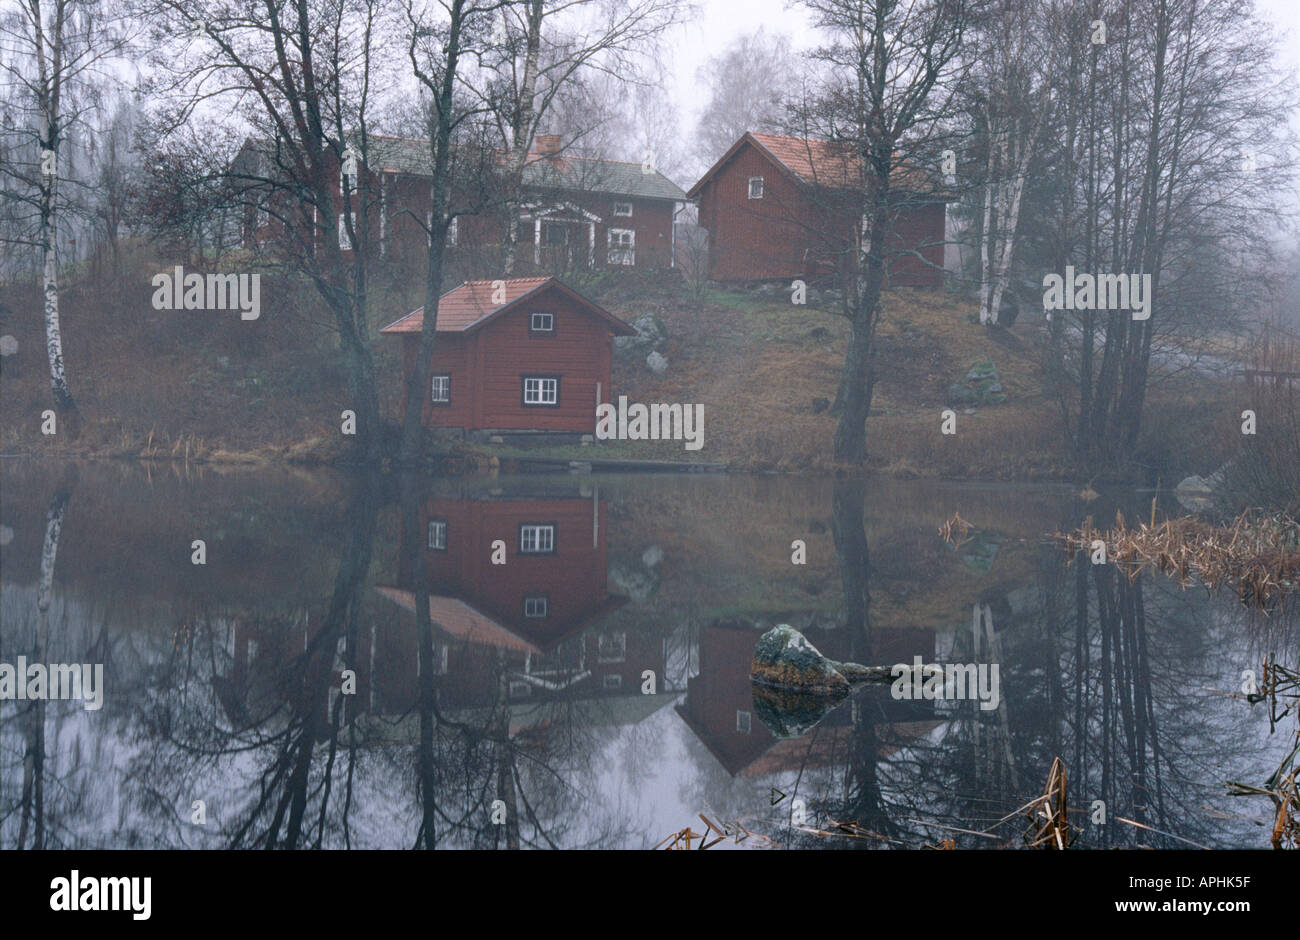 Houses by the lake - Stock Image